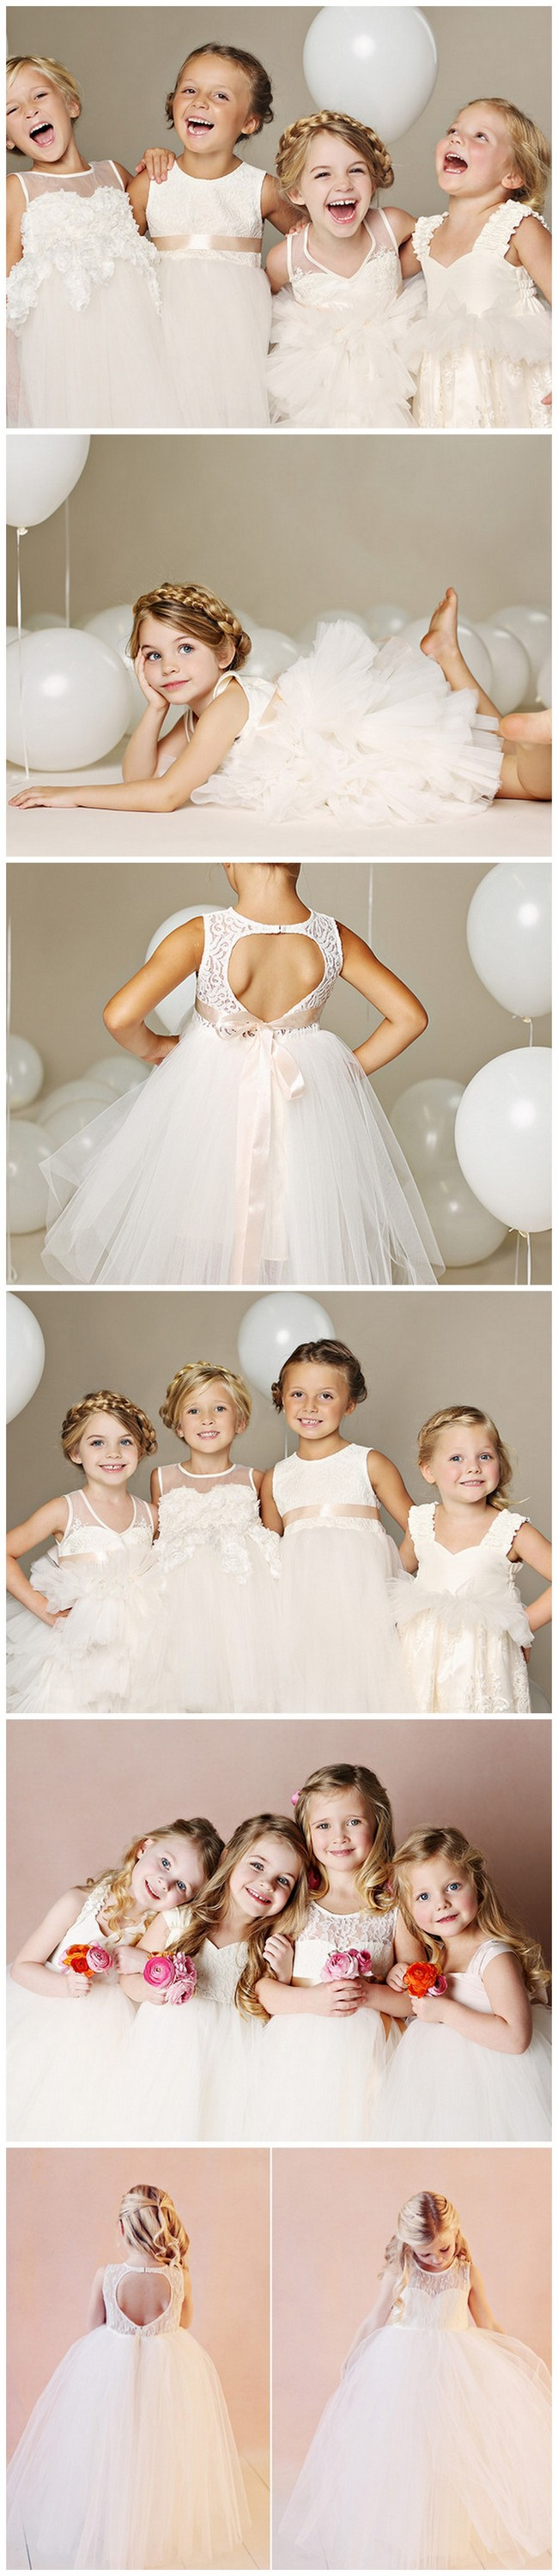 Quite Possible the cutest flower girl dresses on earth! https://www.confettidaydreams.com/flower-girl-dresses-fattie-pie/